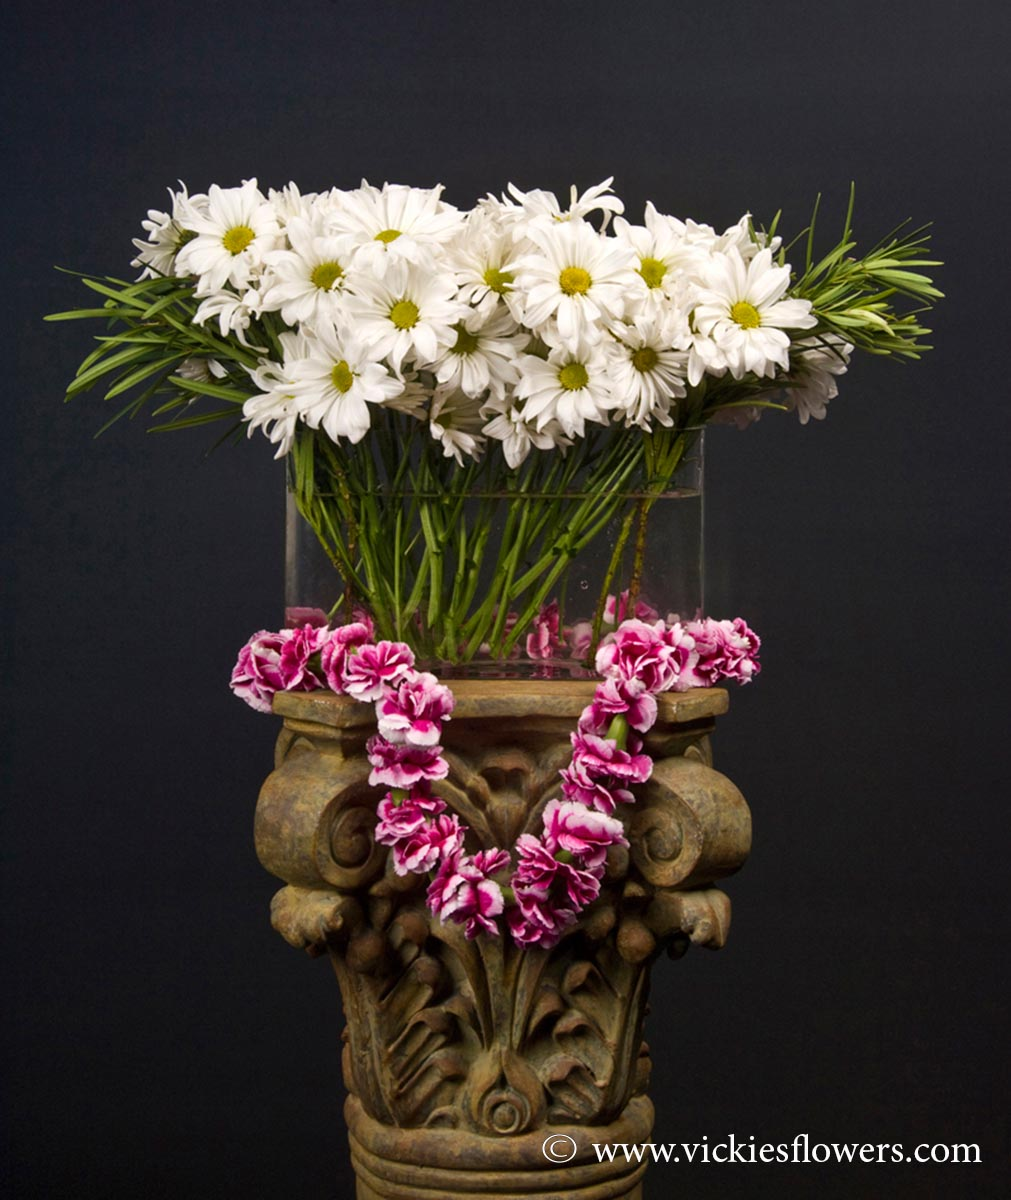 Sympathy flowers and plants vickies flowers brighton co florist funeral sympathy flowers 035 155 plus tax and delivery tropical large hawaiian themed arrangement with white daisies in clear glass oblong vase izmirmasajfo Image collections